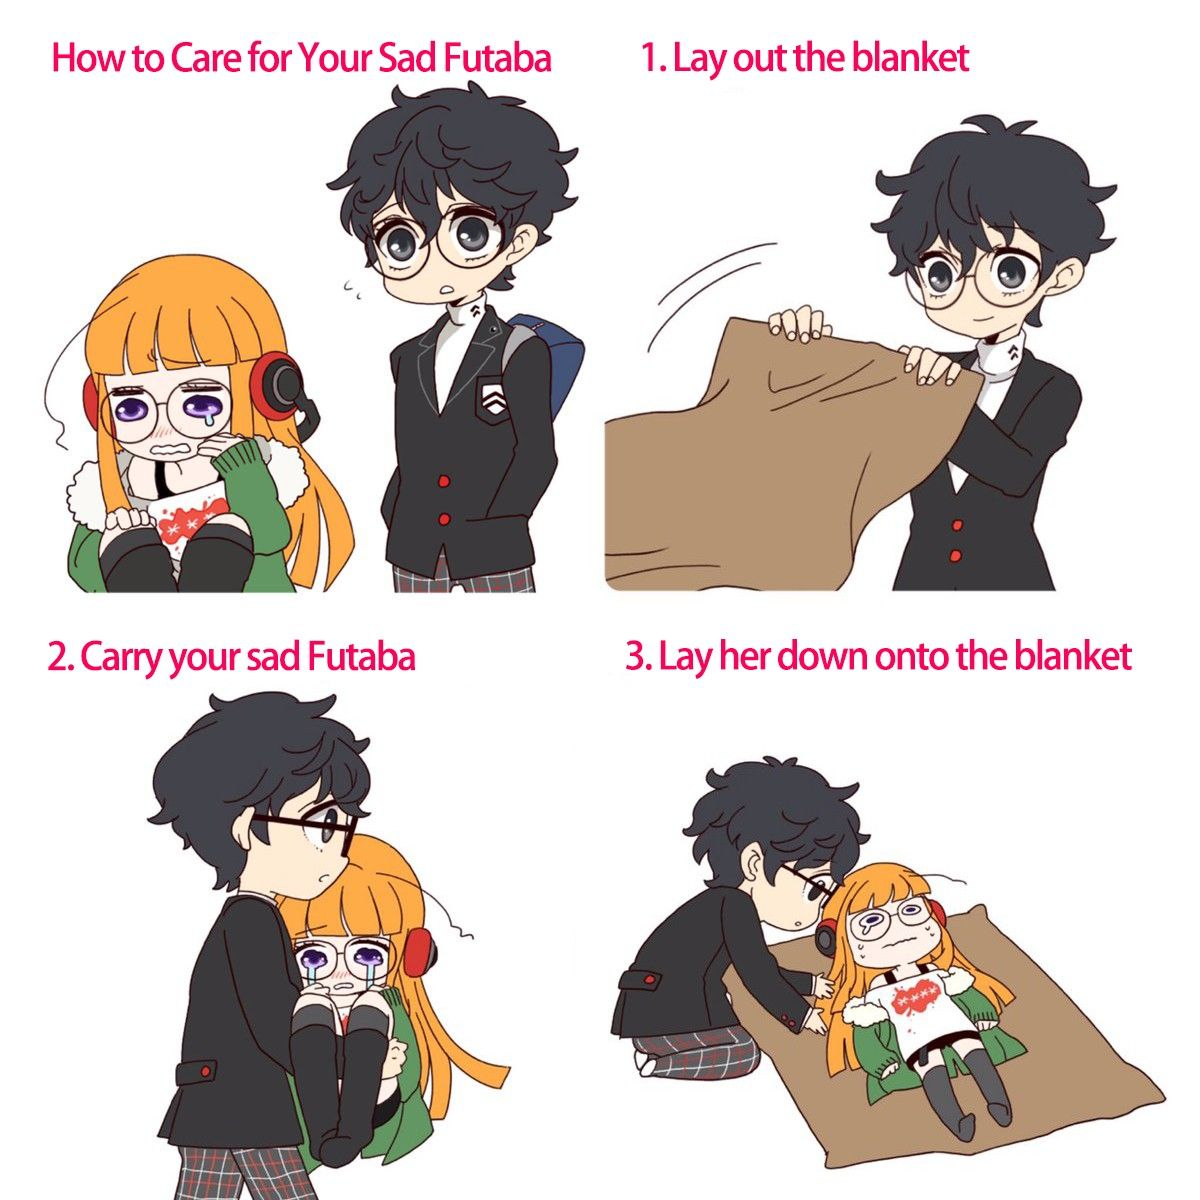 Pin by bird jezzus on funny gaming Persona 5 anime